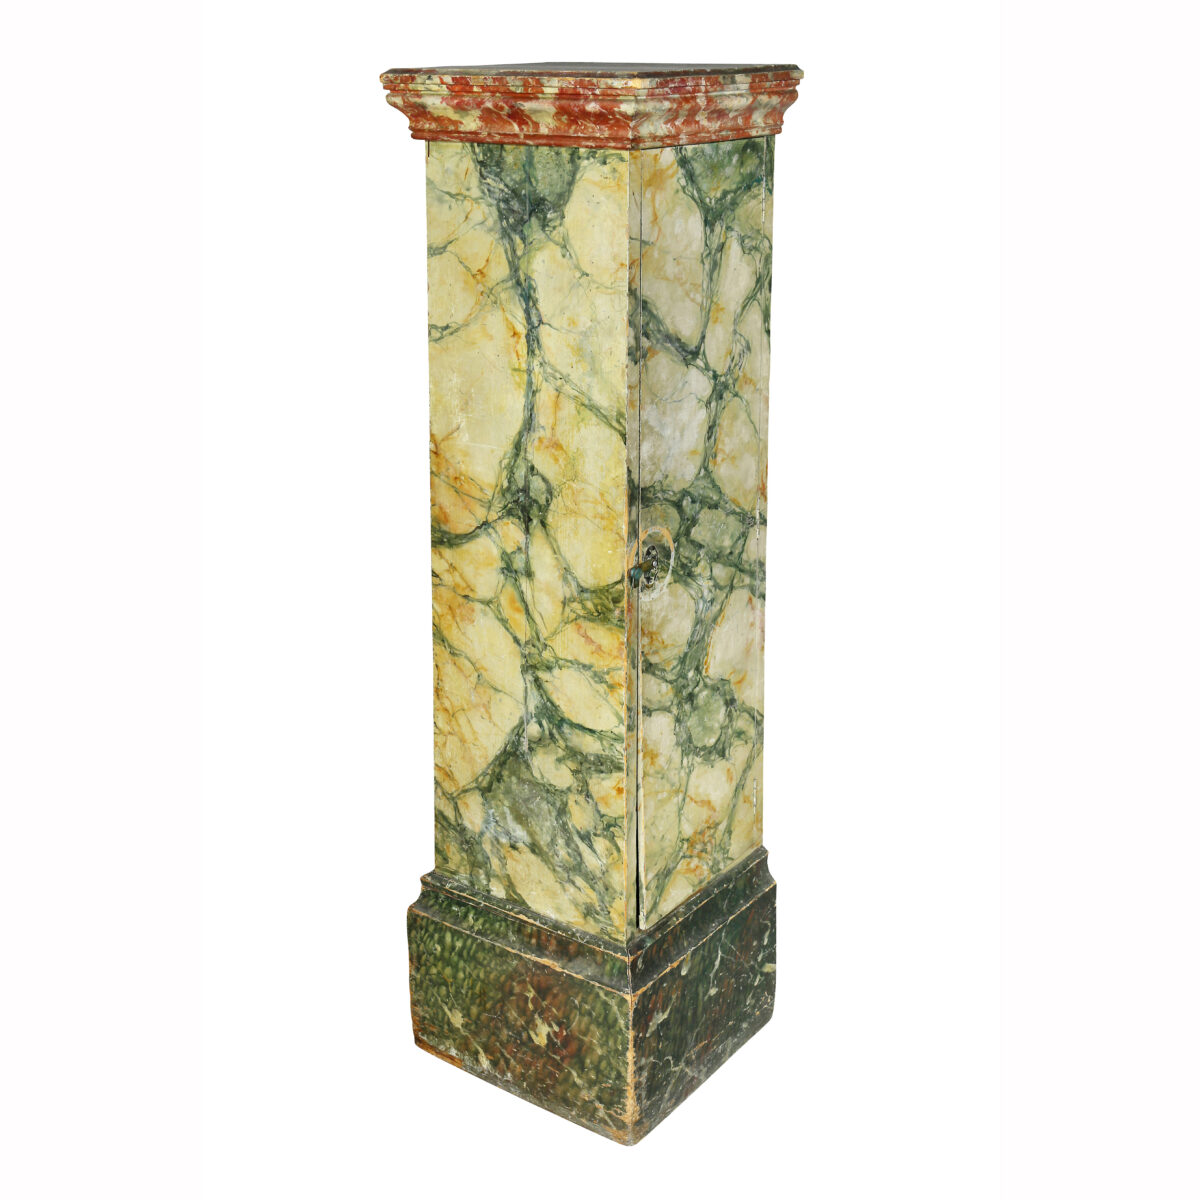 Faux Marble Painted Wood Pedestal or Cabinet.